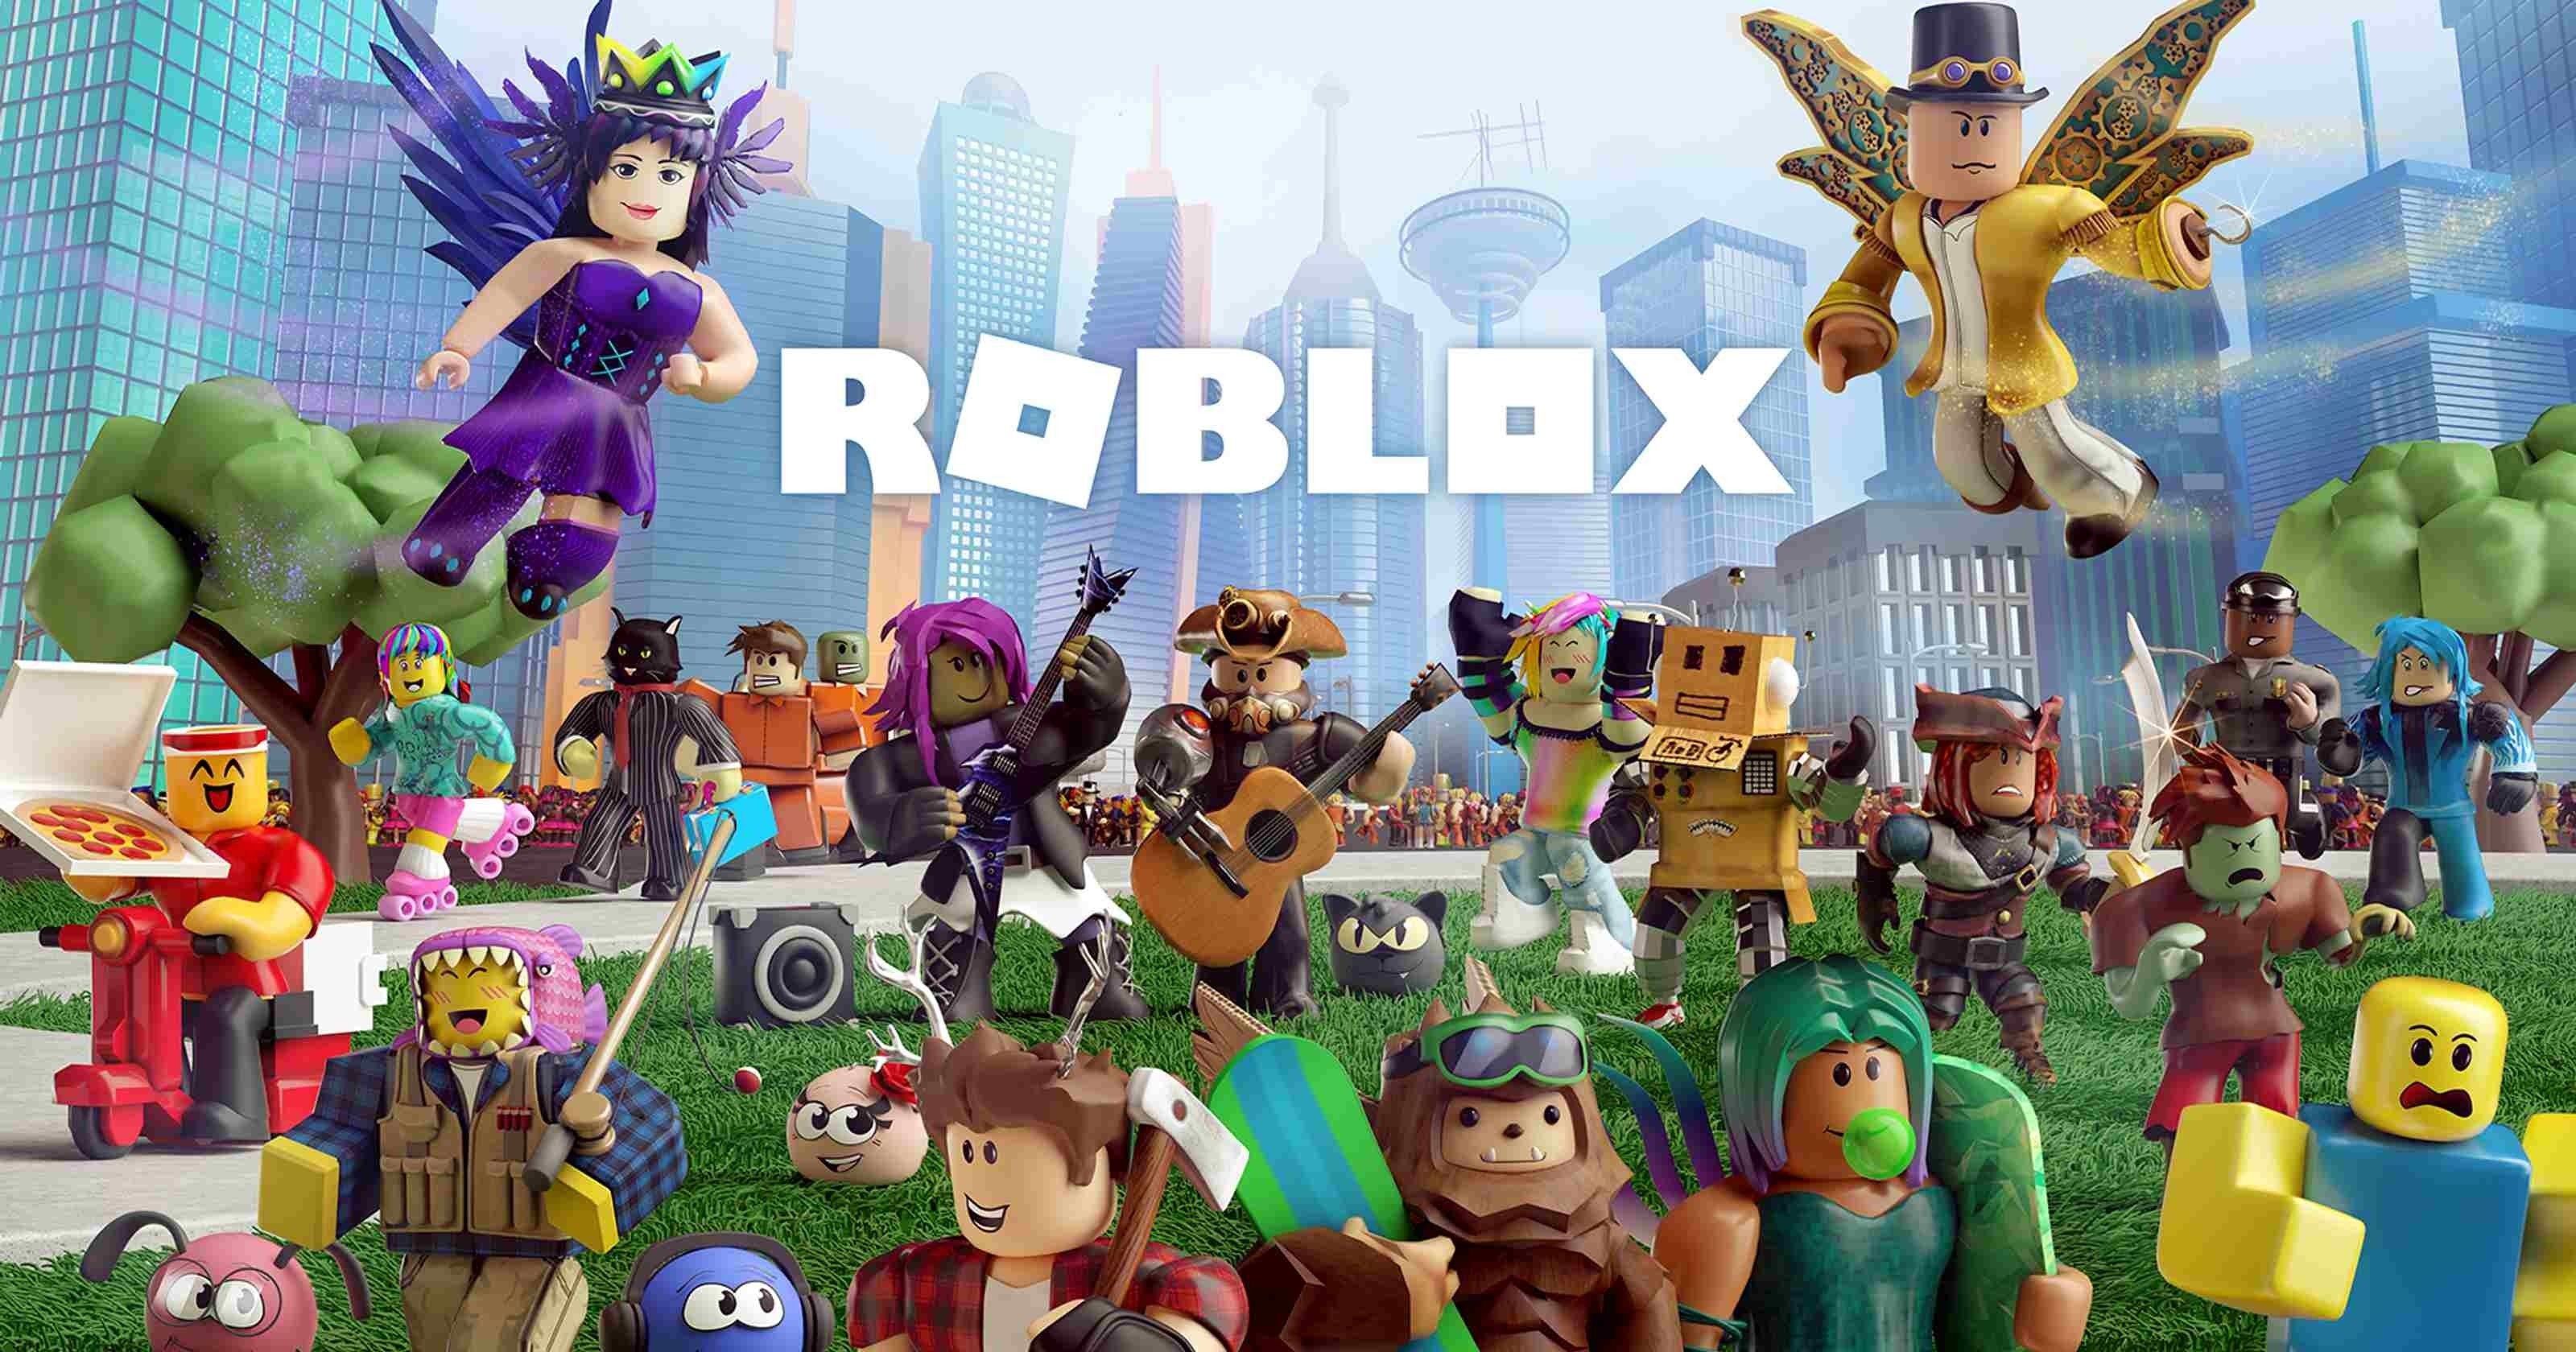 Roblox Characters Wallpapers   Top Roblox Characters 3200x1680